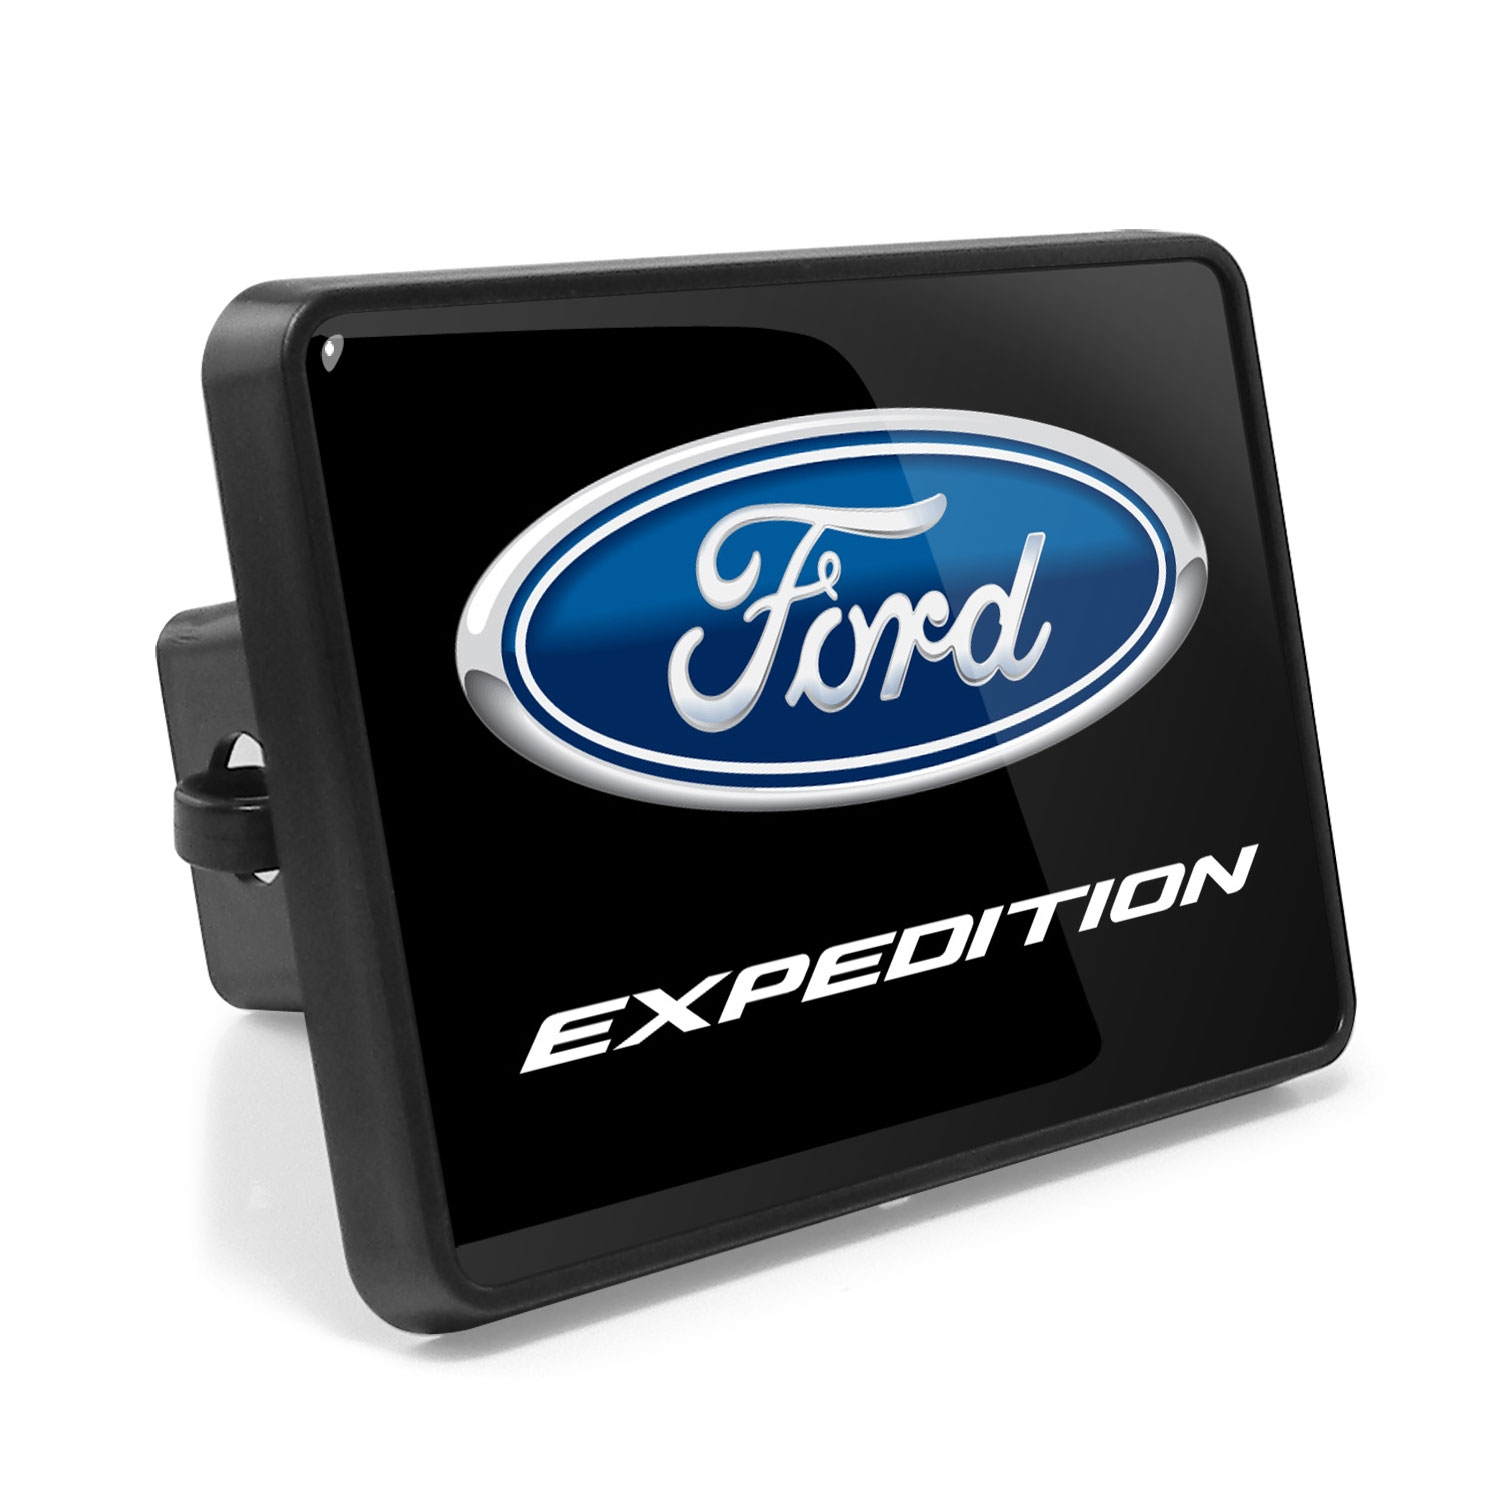 Ford Expedition UV Graphic Metal Plate on ABS Plastic 2 inch Tow Hitch Cover